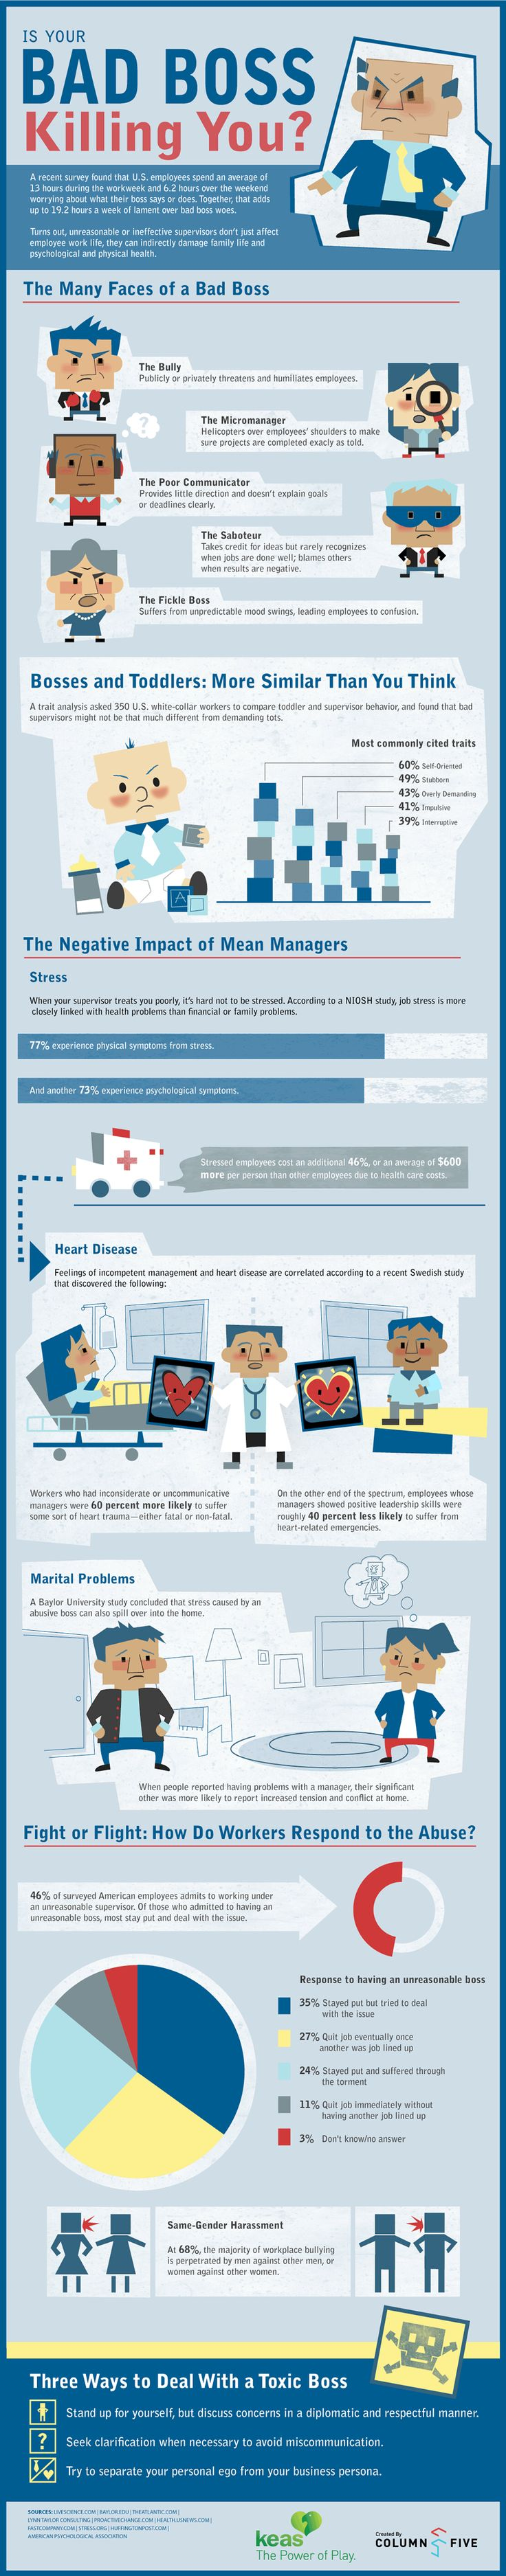 is your boss killing you infographic